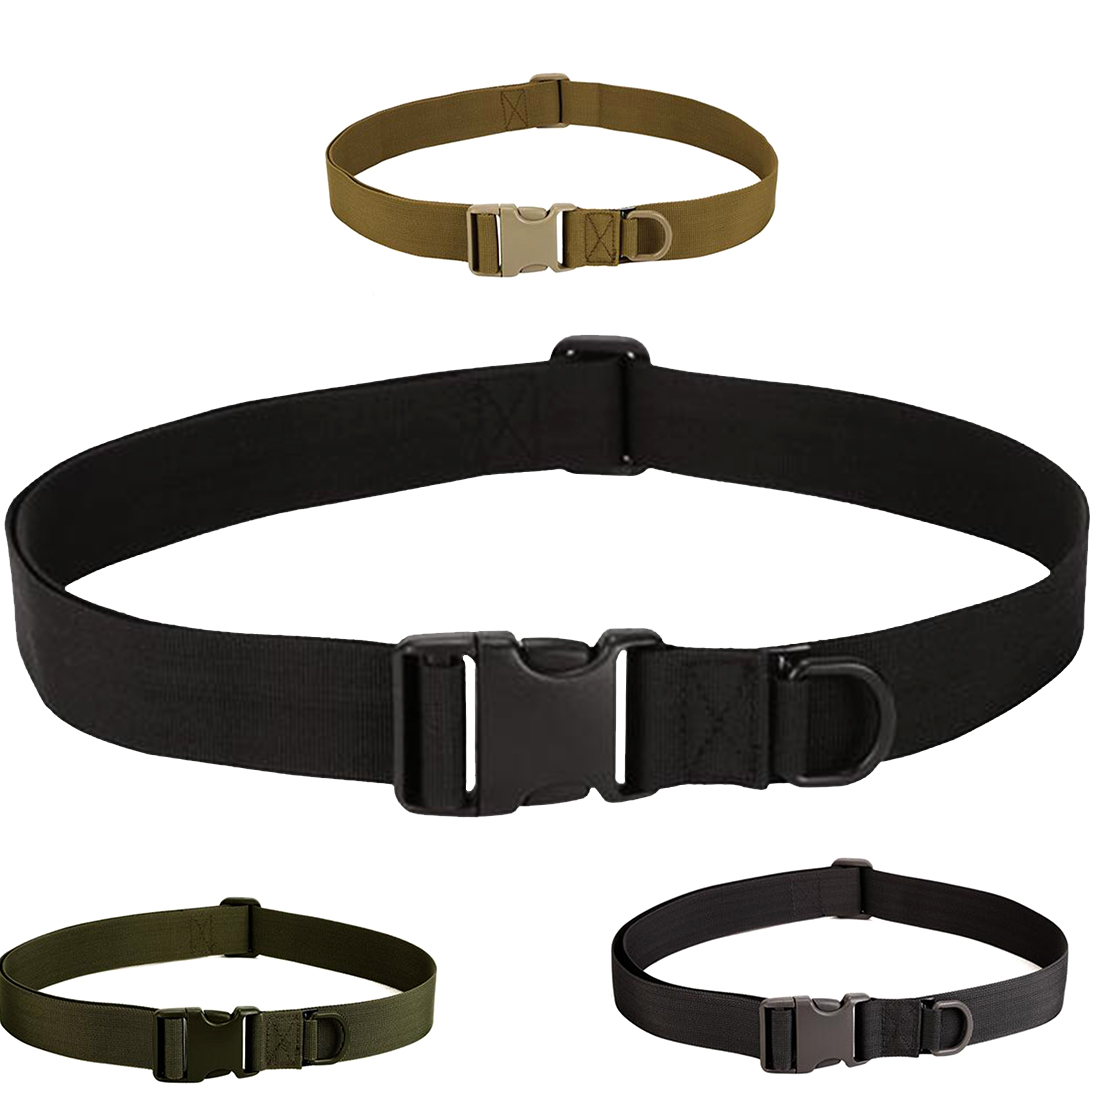 Mens Military Equipment Knock Off Army Belt Heavy Duty US Soldier Combat Simple Tactical Belts Sturdy Nylon Waistband